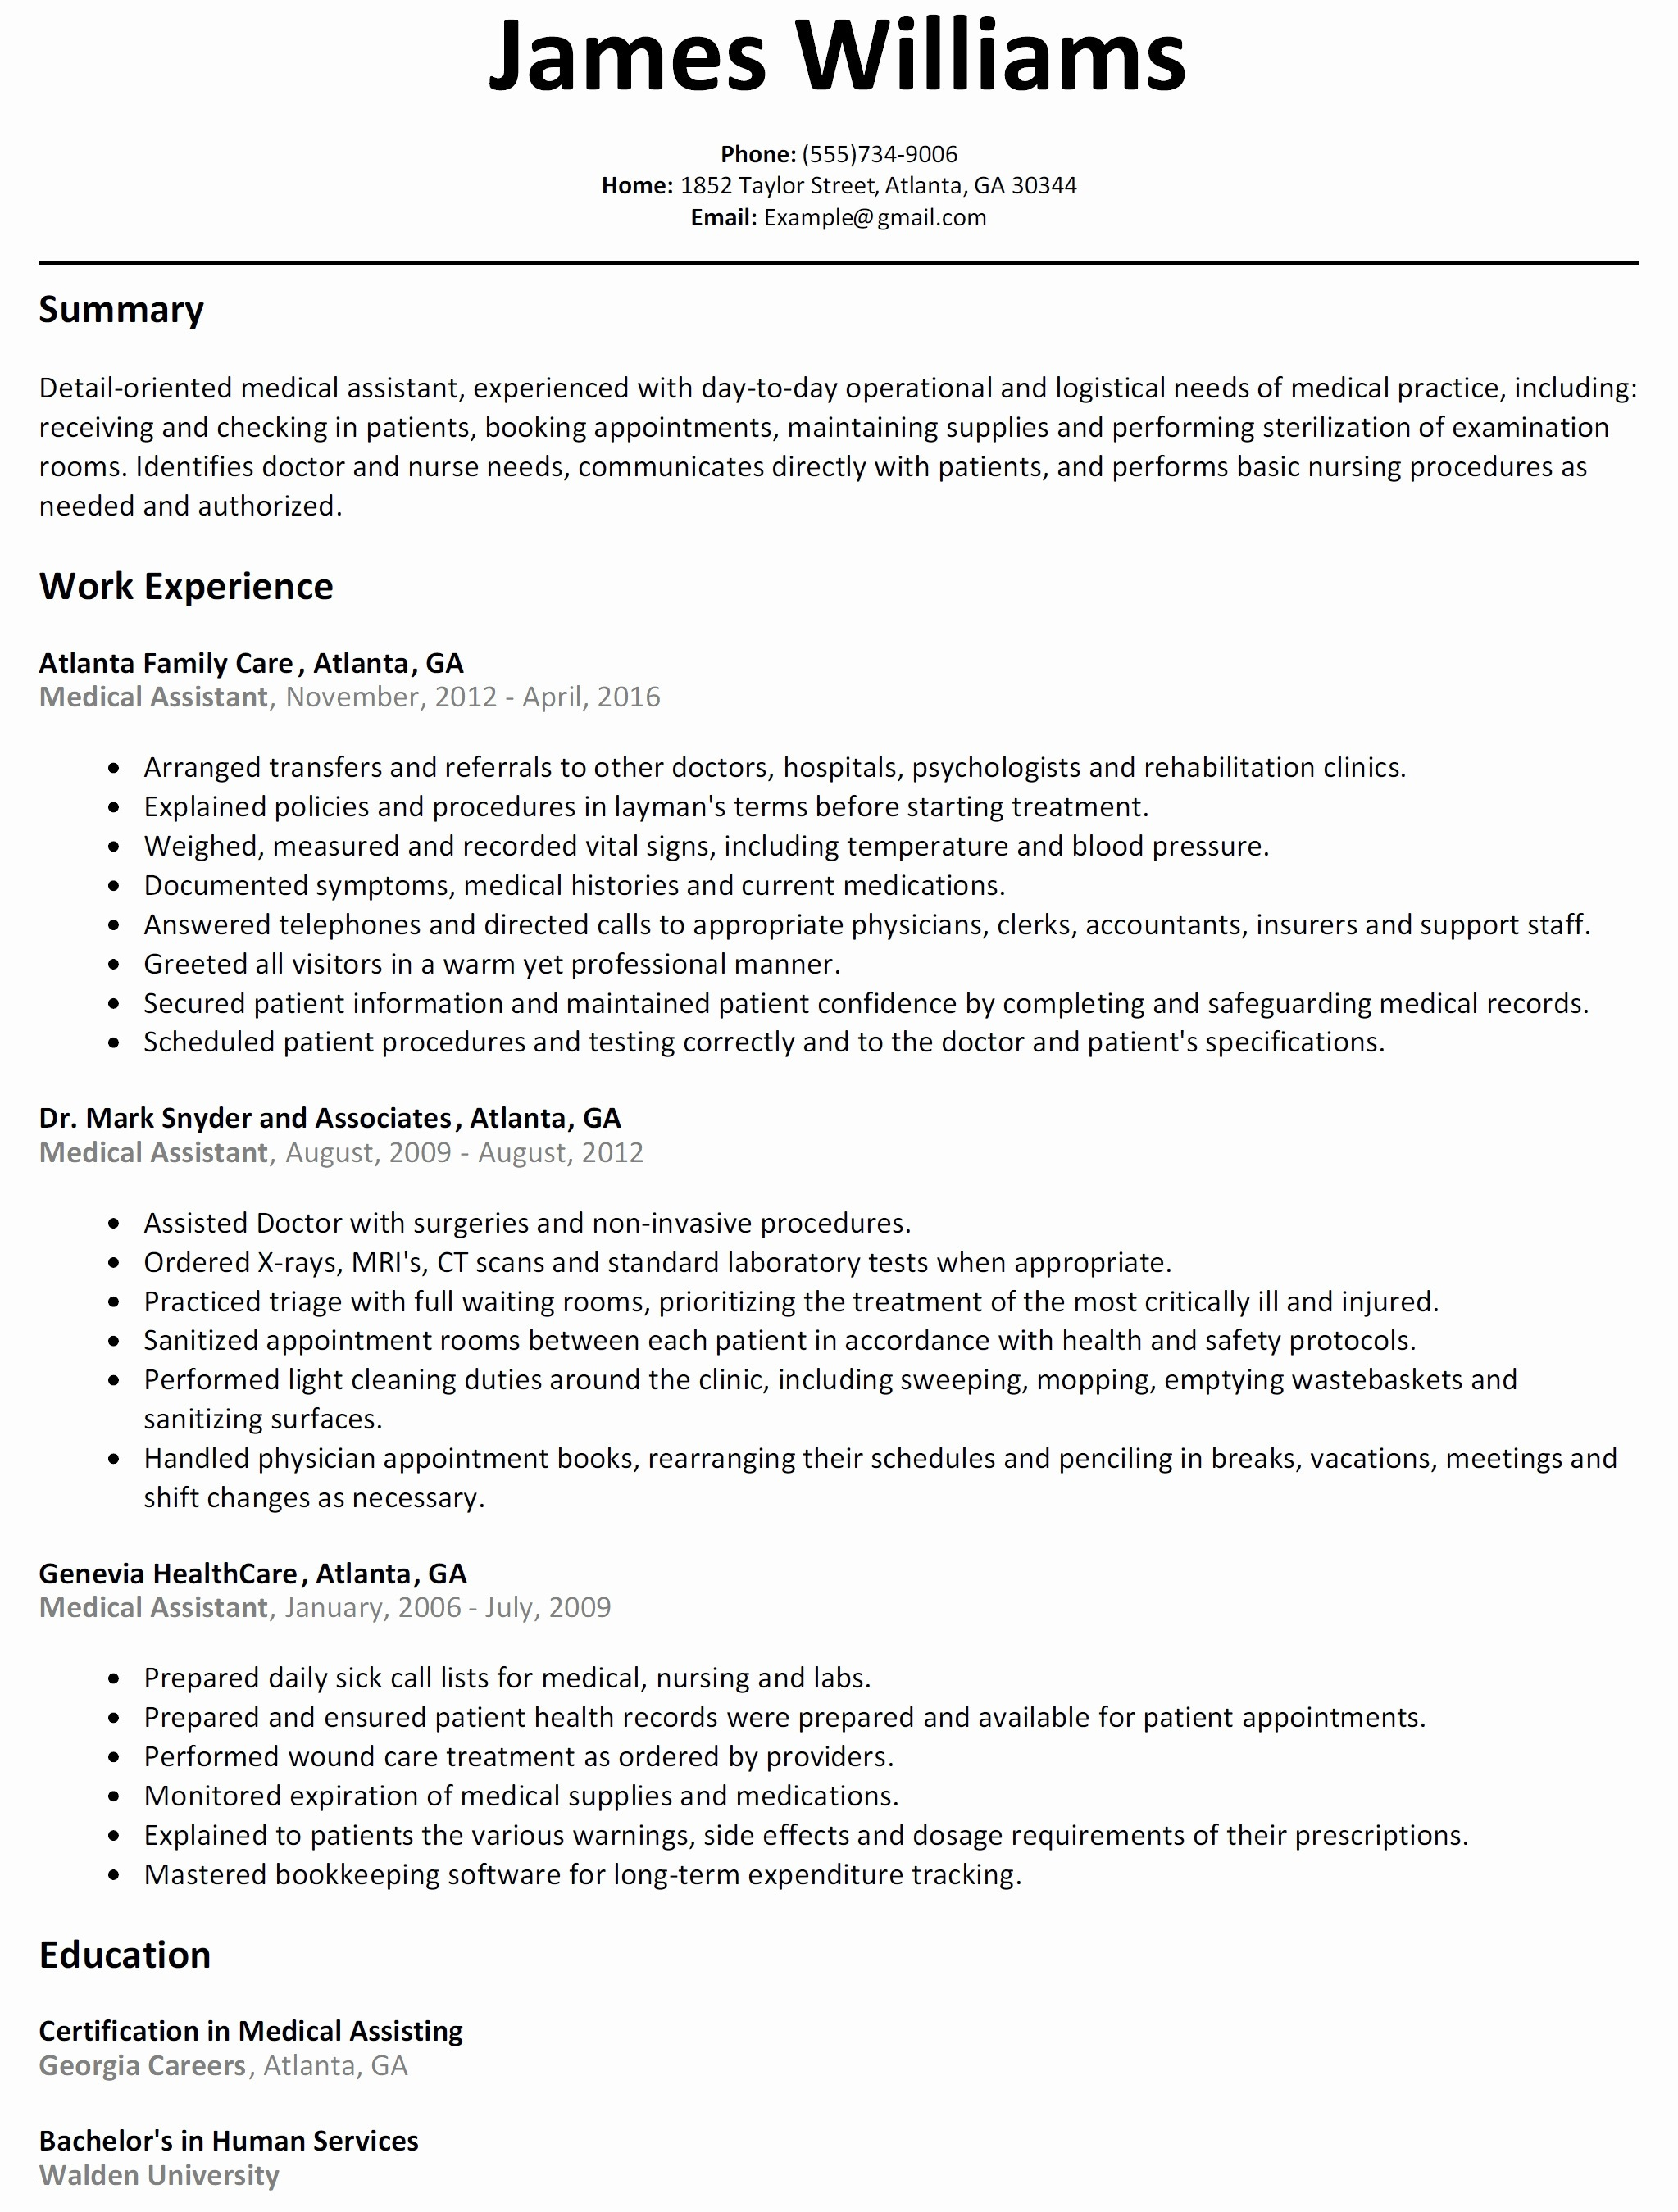 nursing resume template 2016 Collection-Interesting Resume format Awesome Simple Resume format In Word Unique Resume Template Free Word New Od 14-l